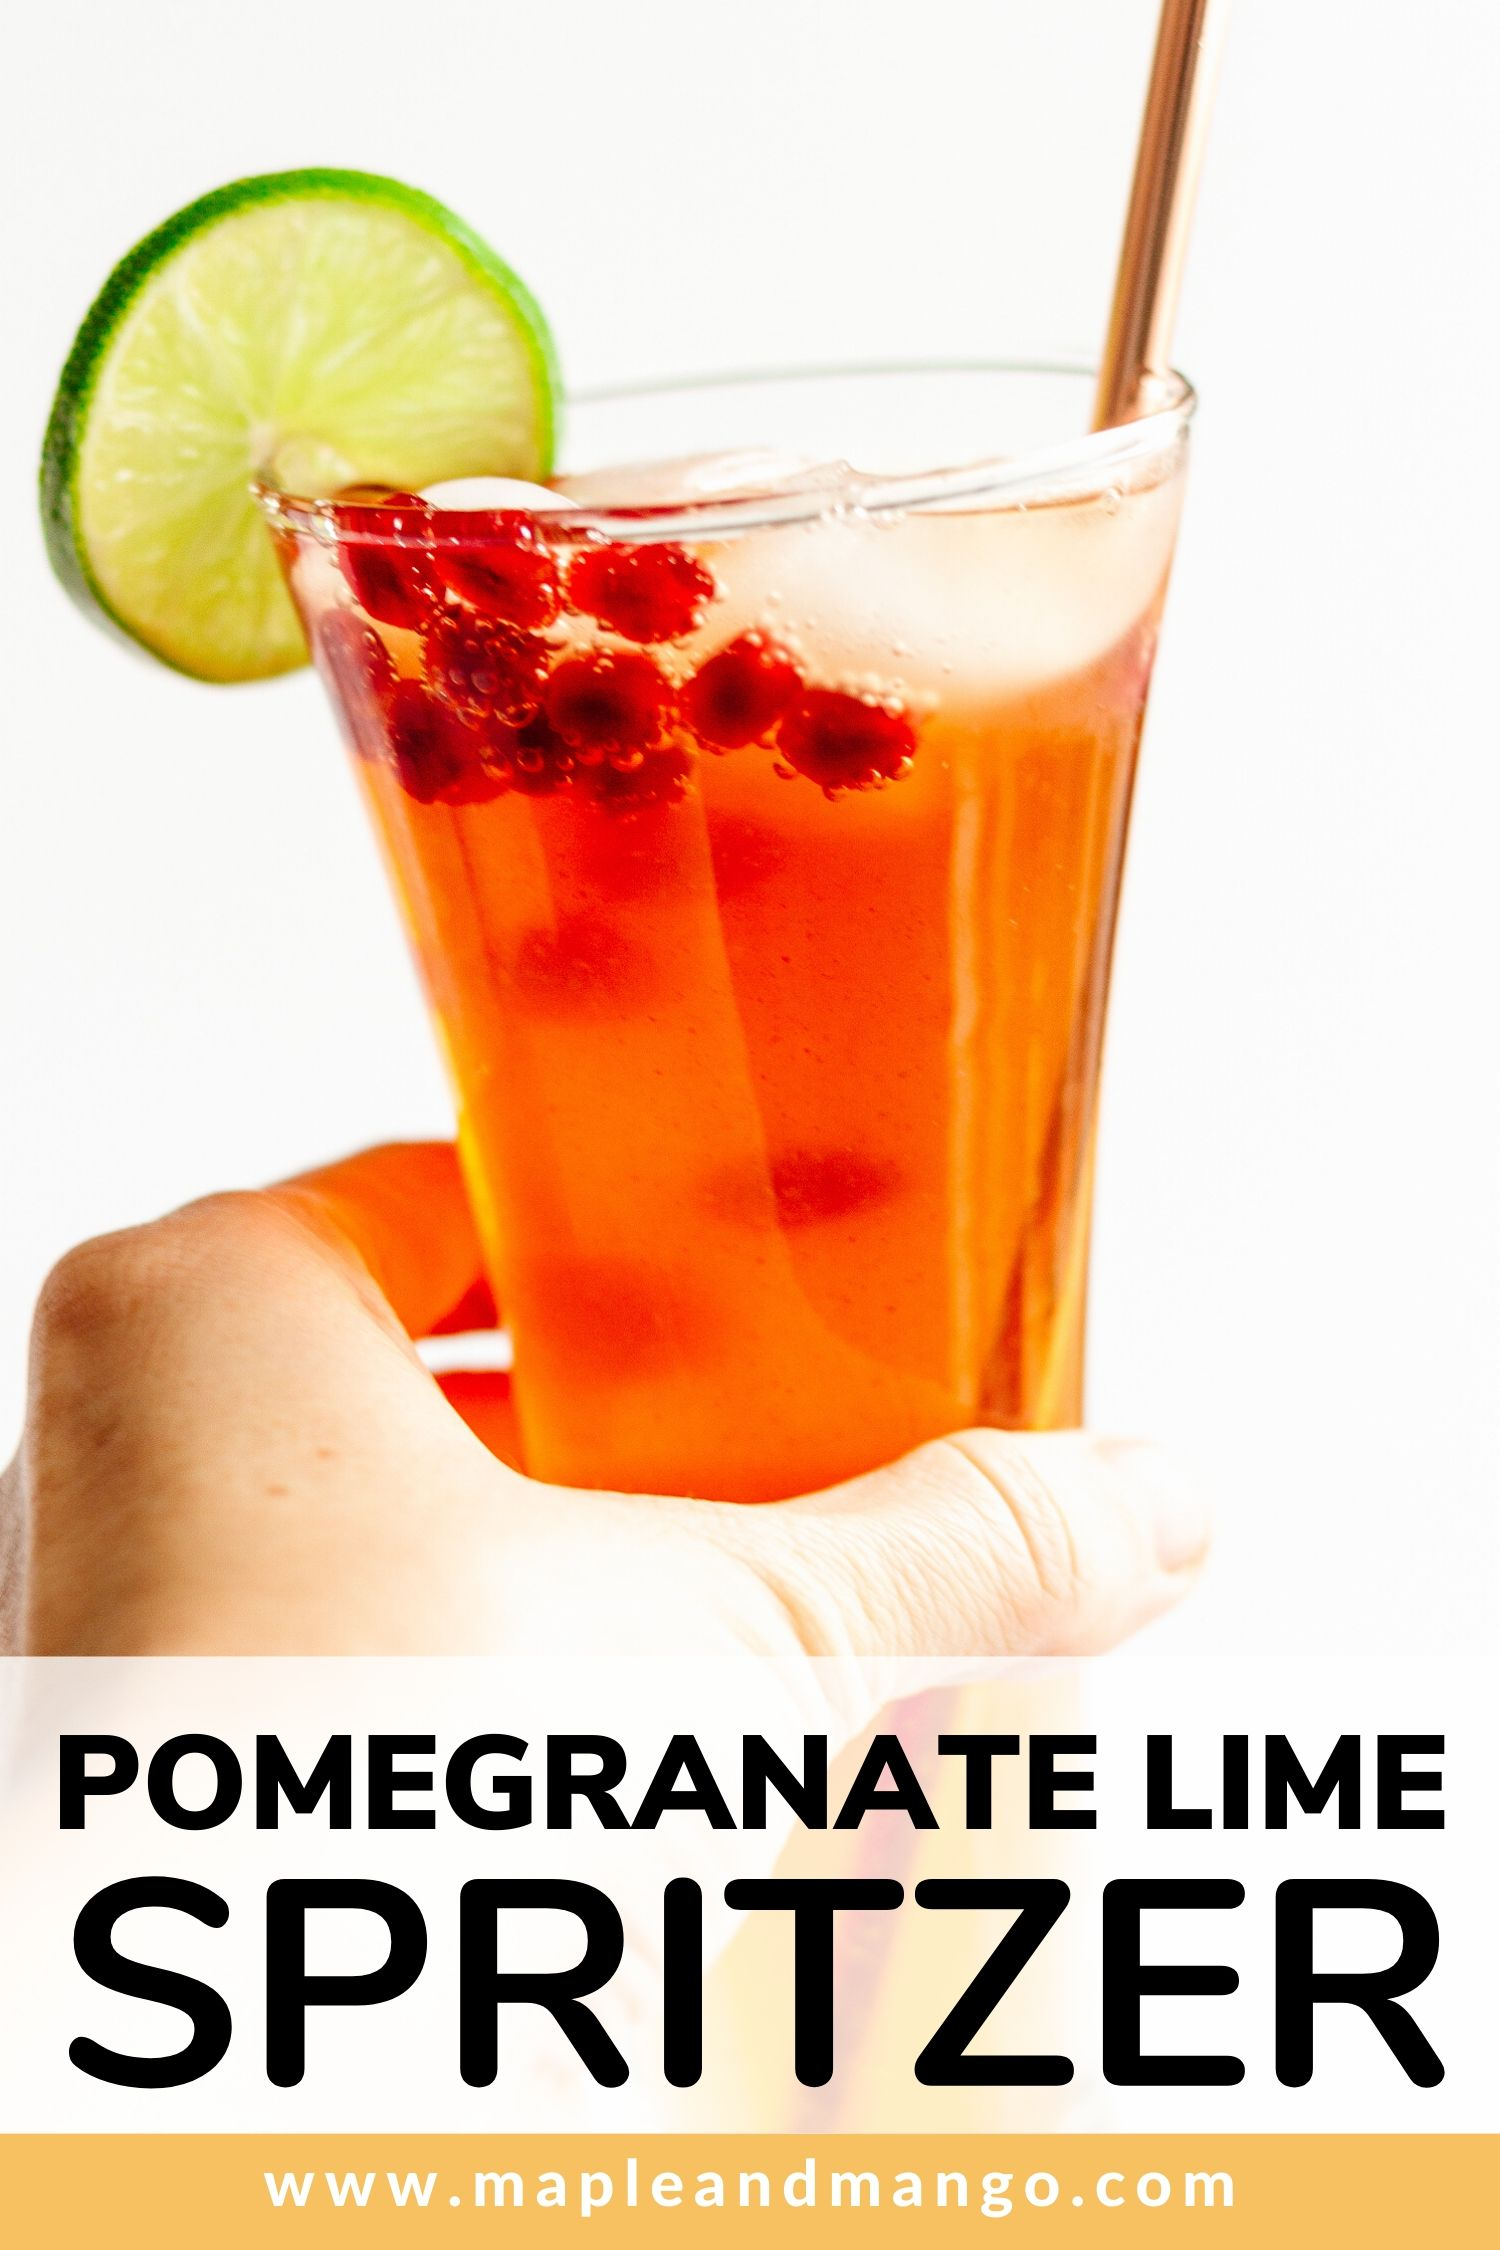 Pinterest image for Pomegranate Lime Spritzer